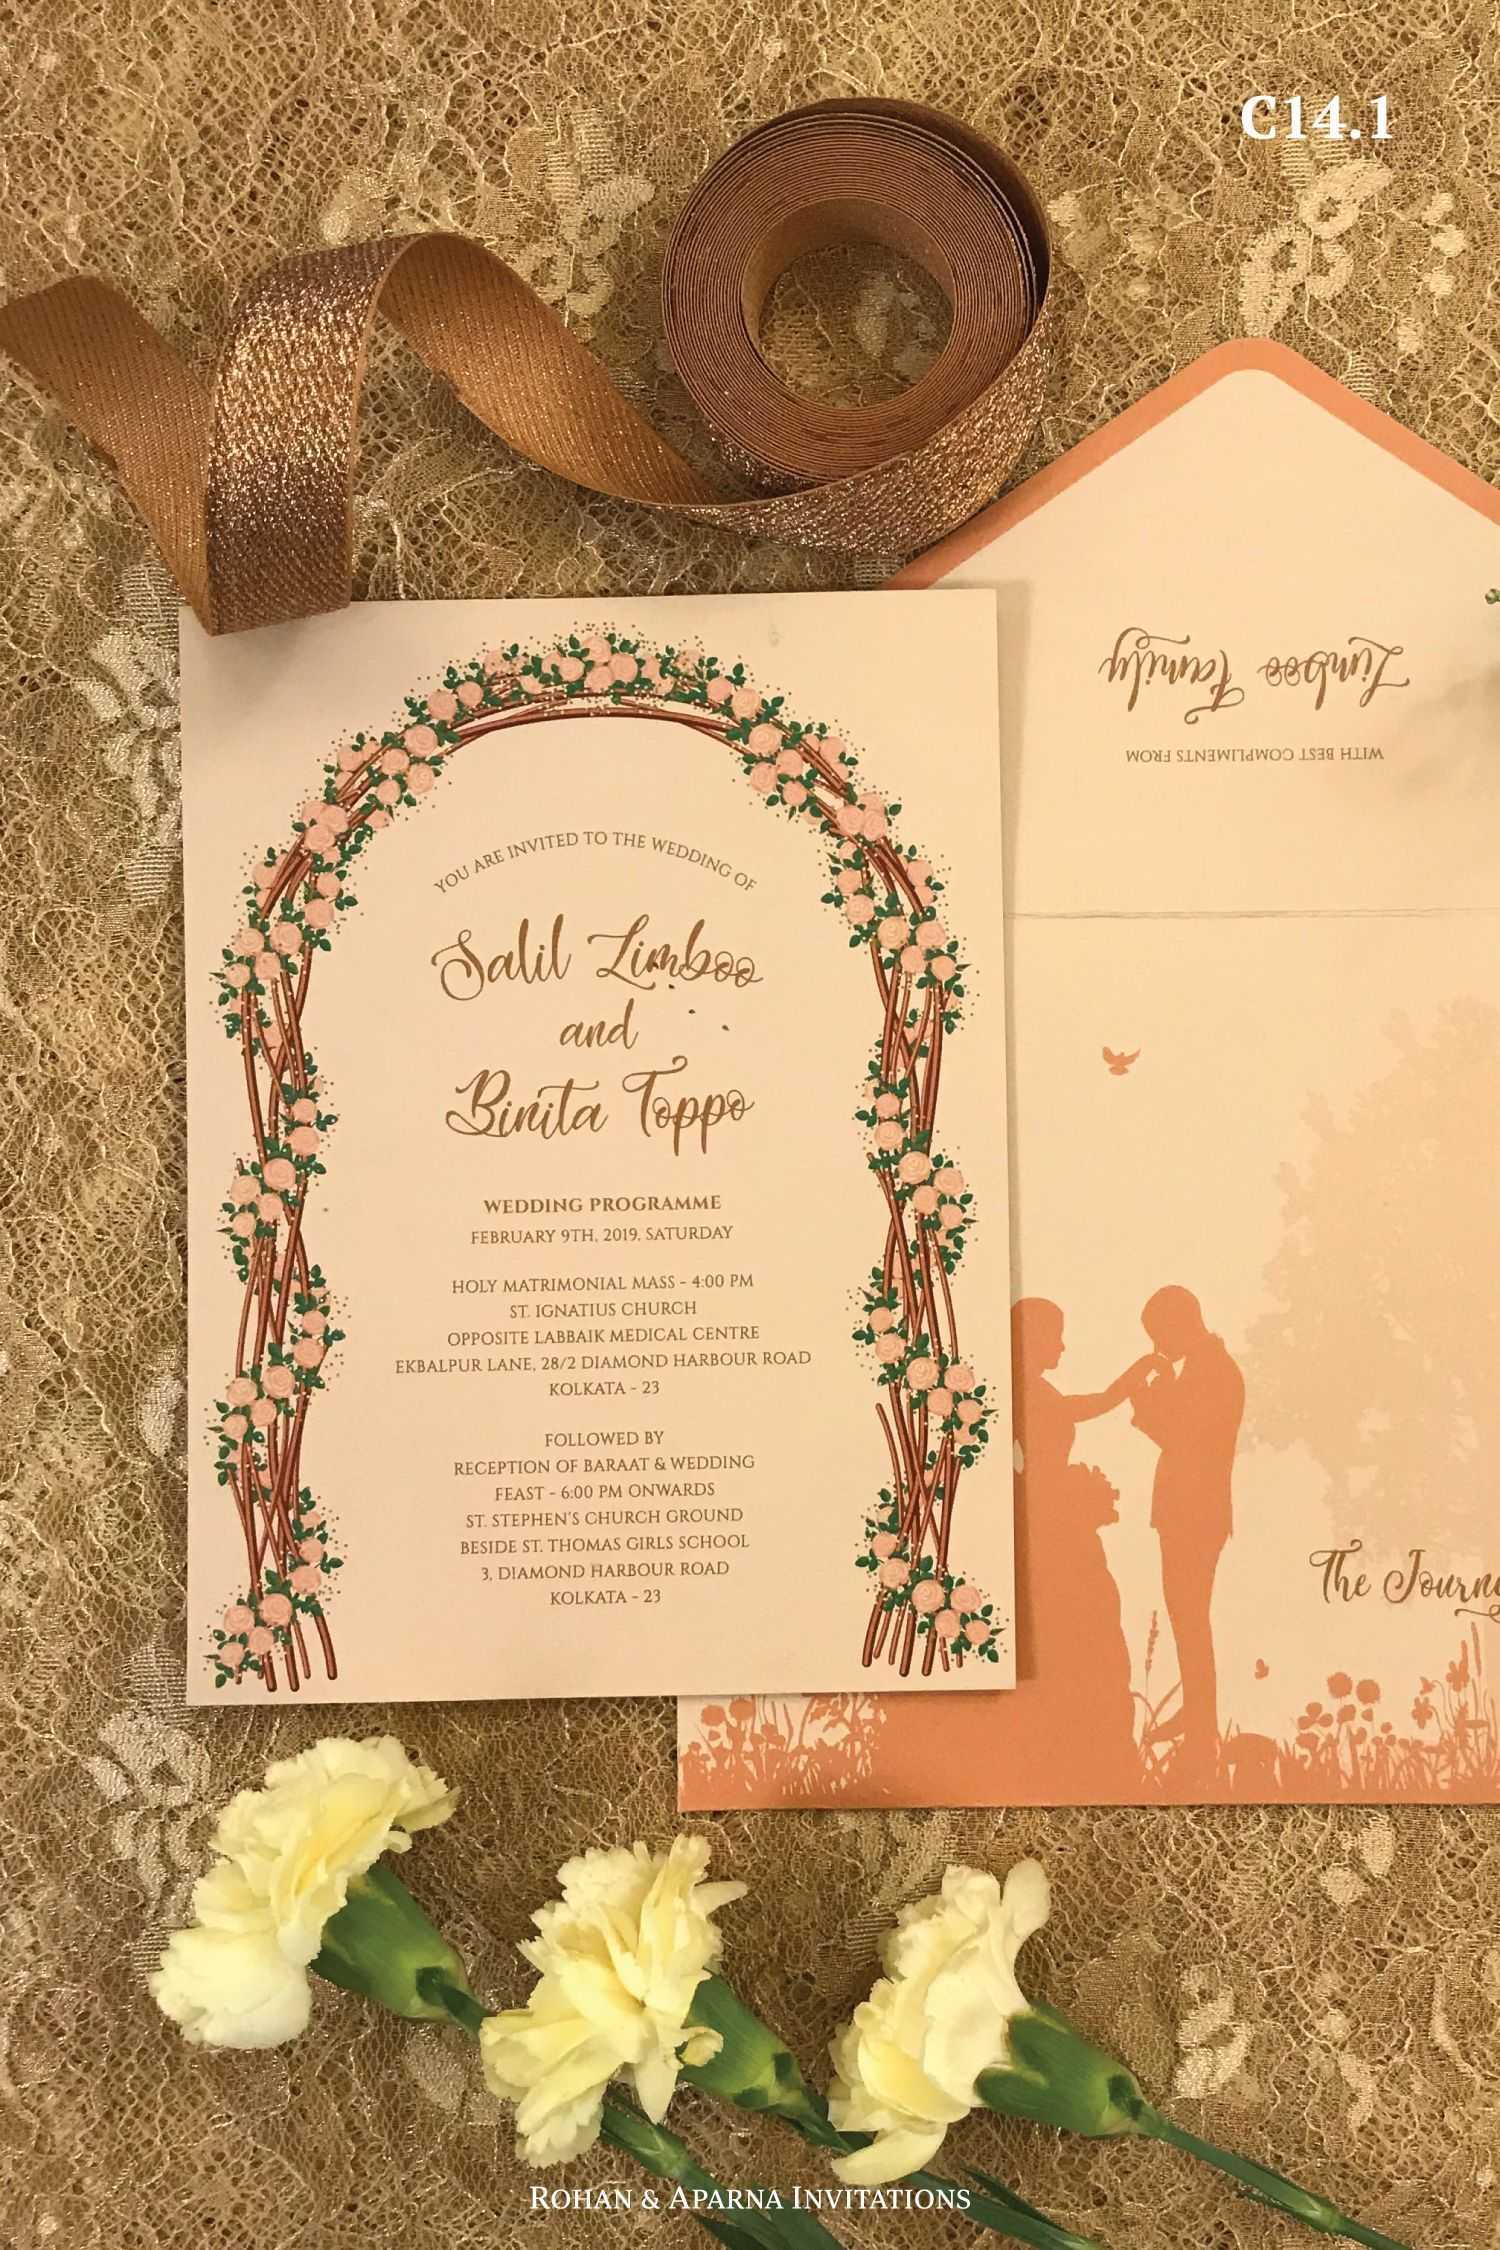 Beautiful Floral Arch Christian Wedding Invitation For More Design Ideas Visit Christian Wedding Invitations Christian Wedding Cards Christian Wedding